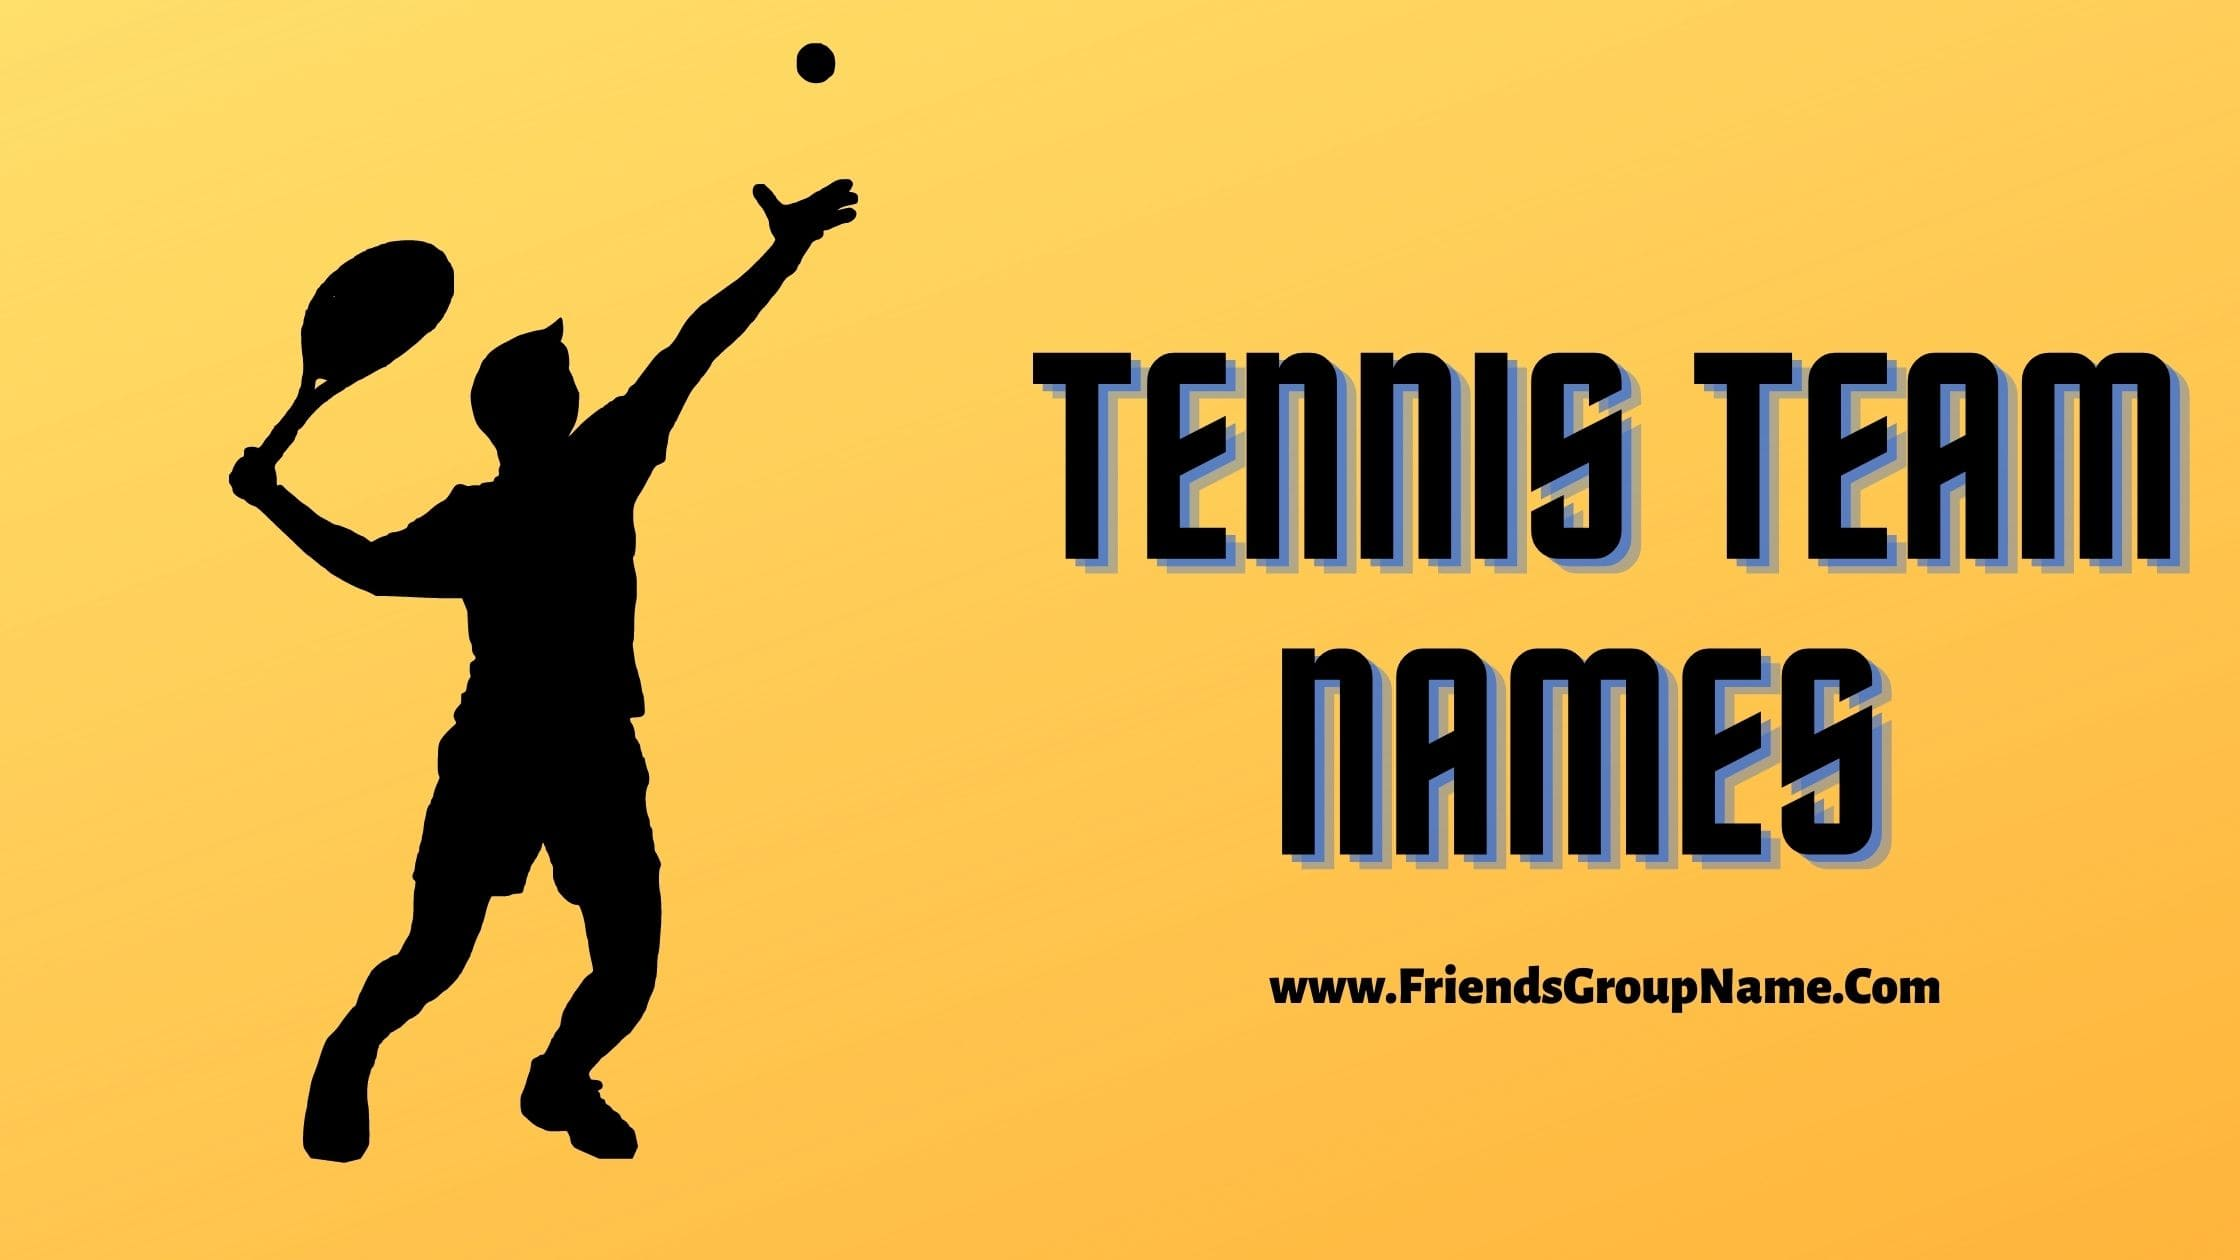 Tennis Team Names